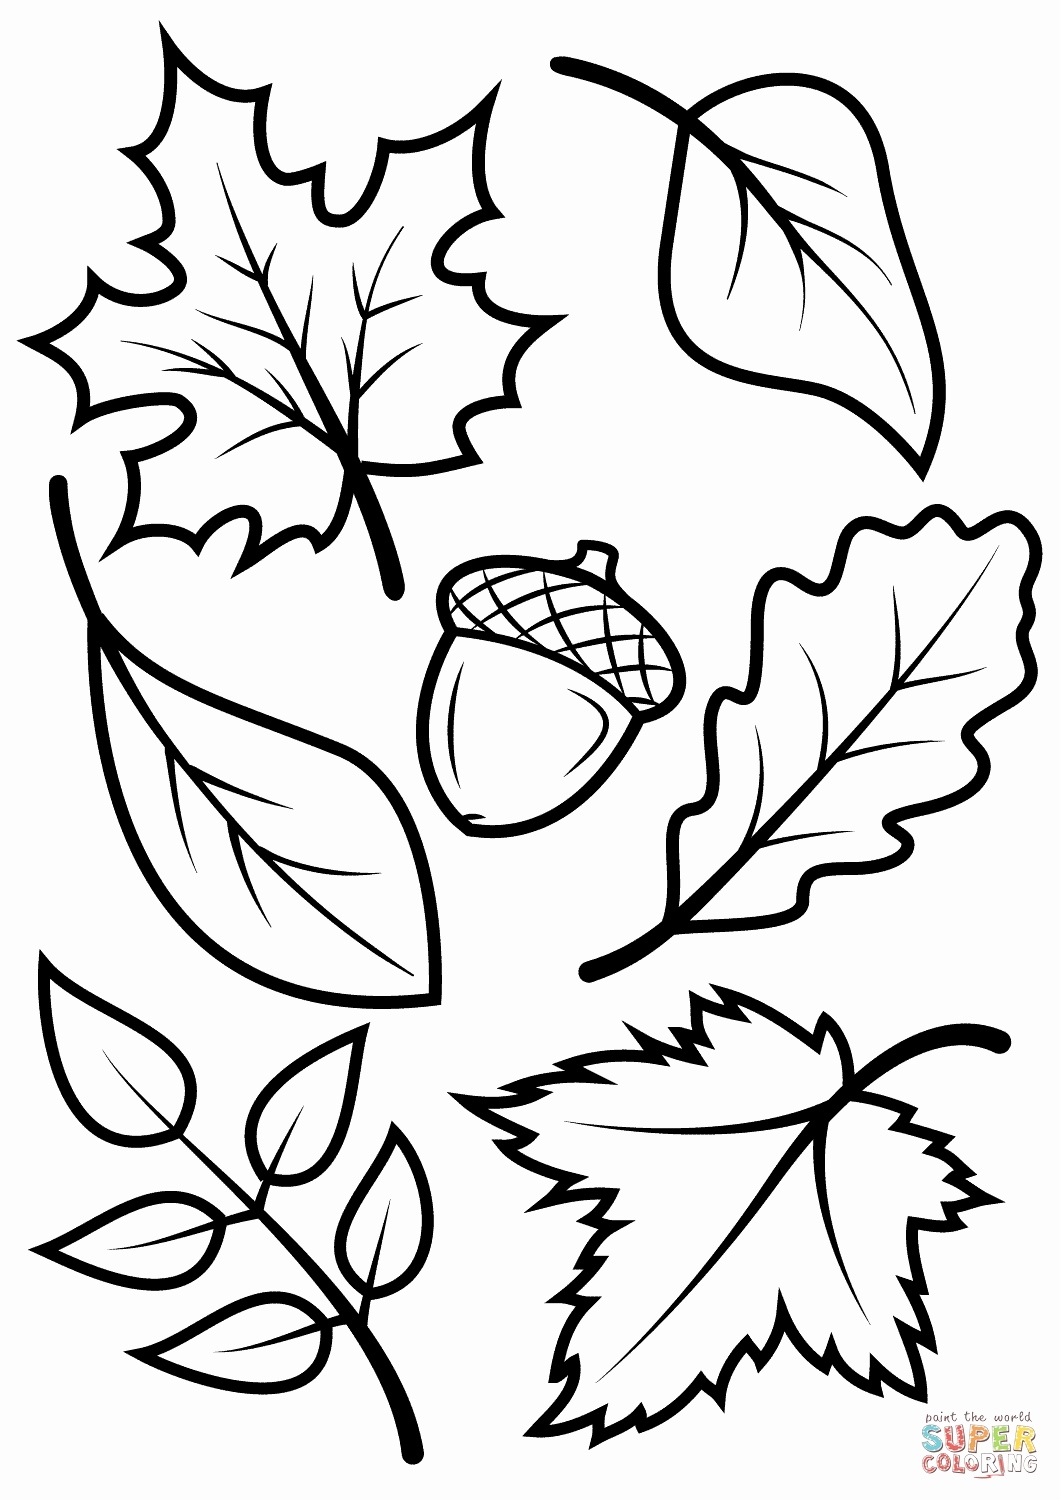 1060x1500 Fall Leaves Coloring Pages Printable Best Of Fall Leaves